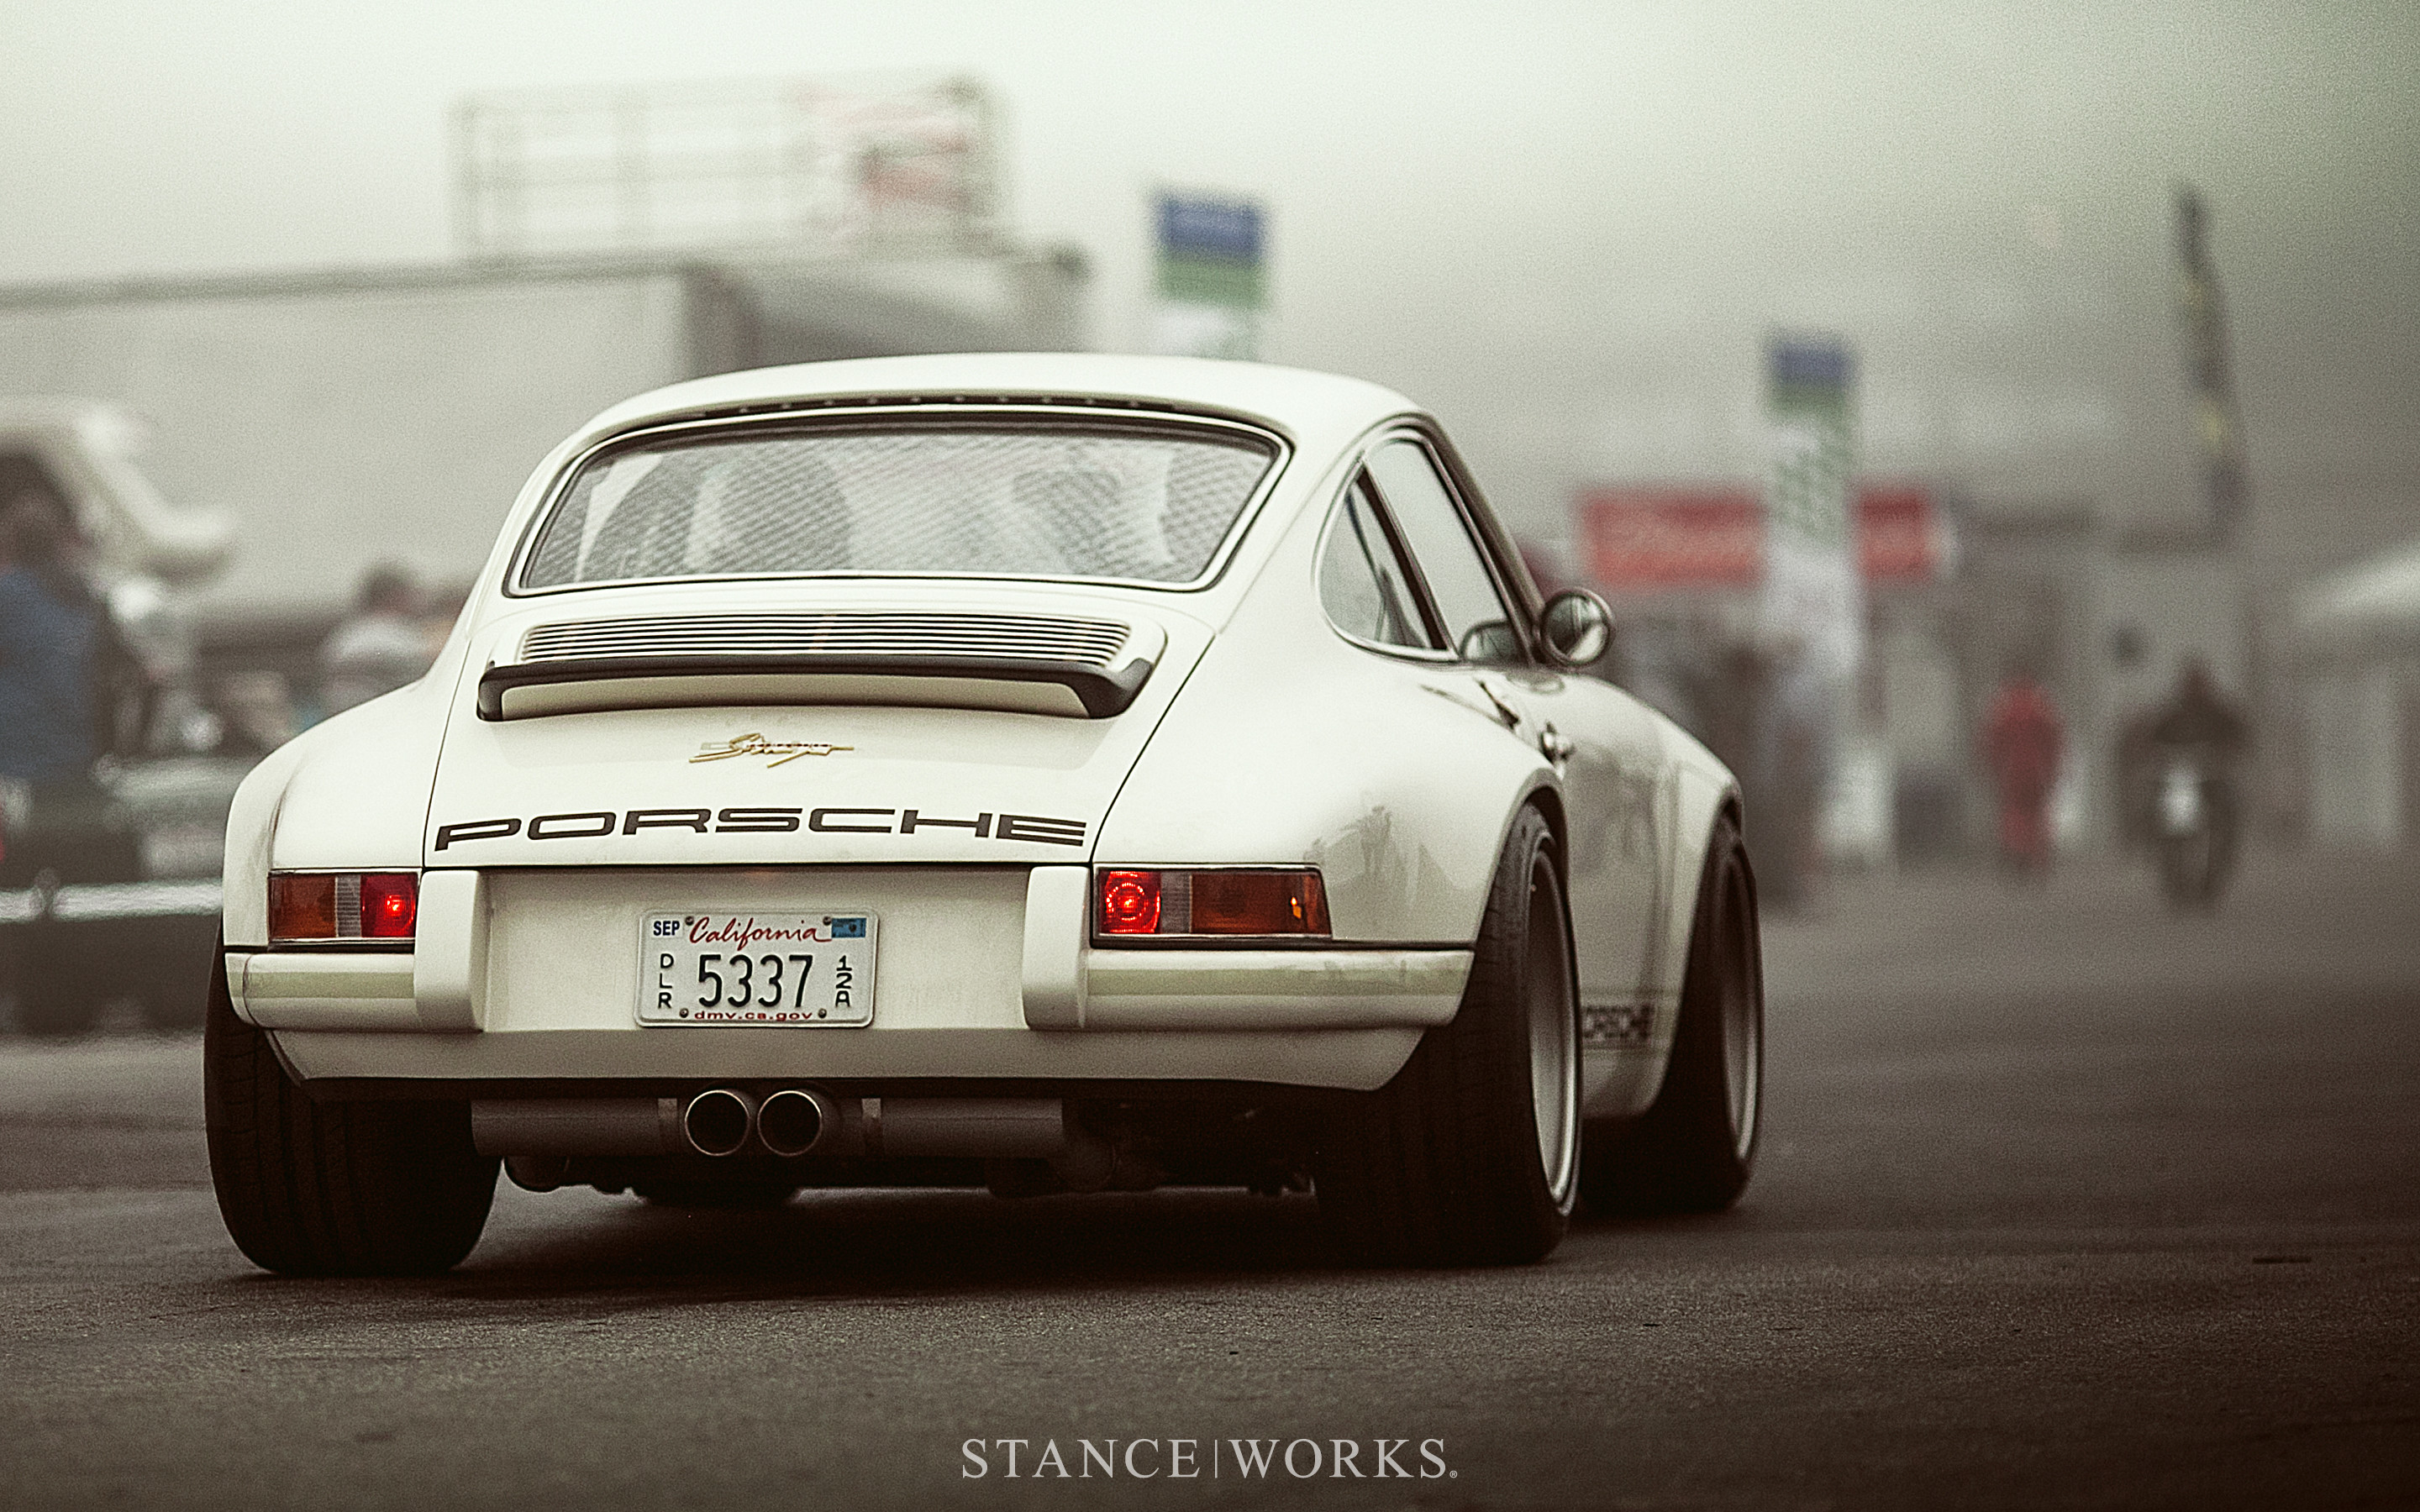 2880x1800 Stance Works - Singer Porsche Desktop Wallpaper